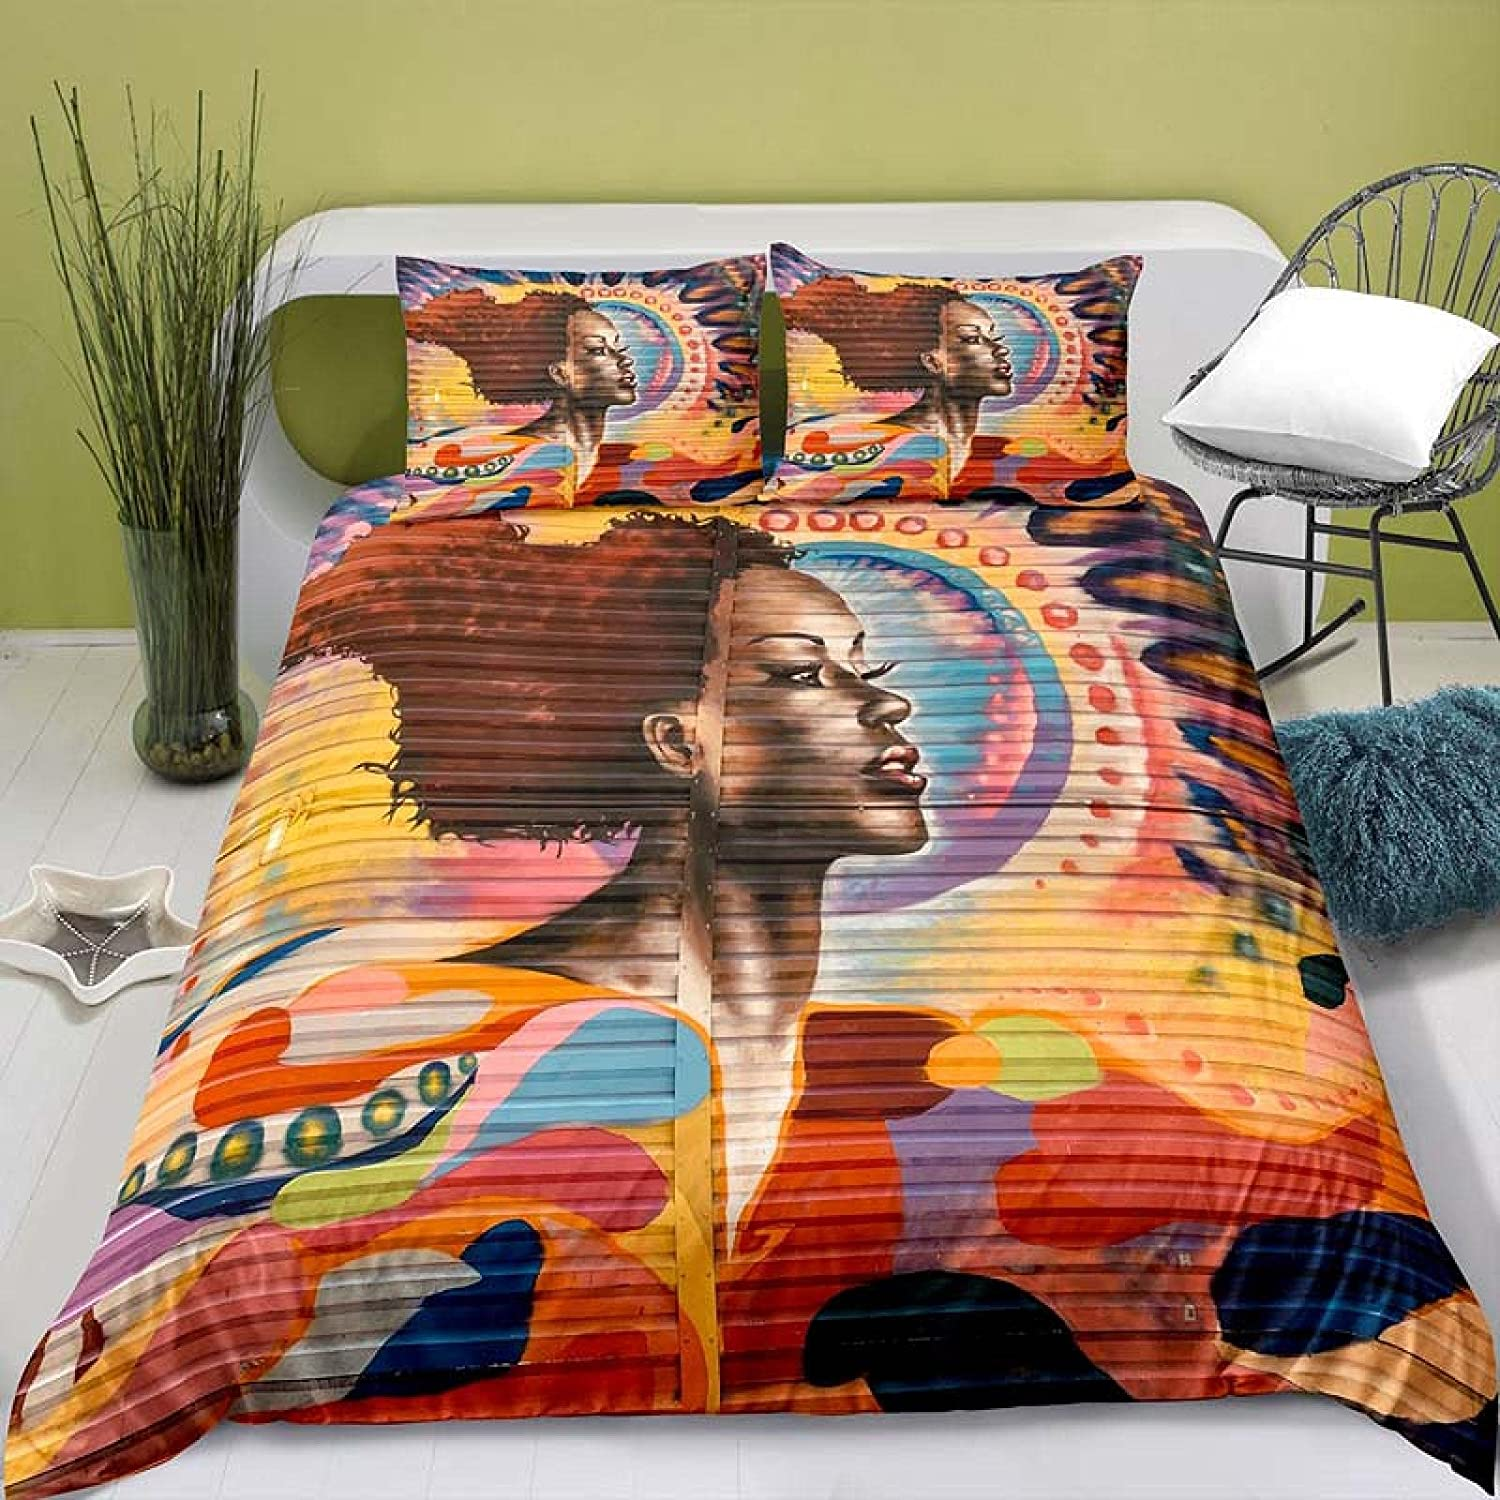 HQHM Duvet Cover King 3 2021new shipping free shipping Pieces Quality inspection Retro Color 87X9 Painting Pattern